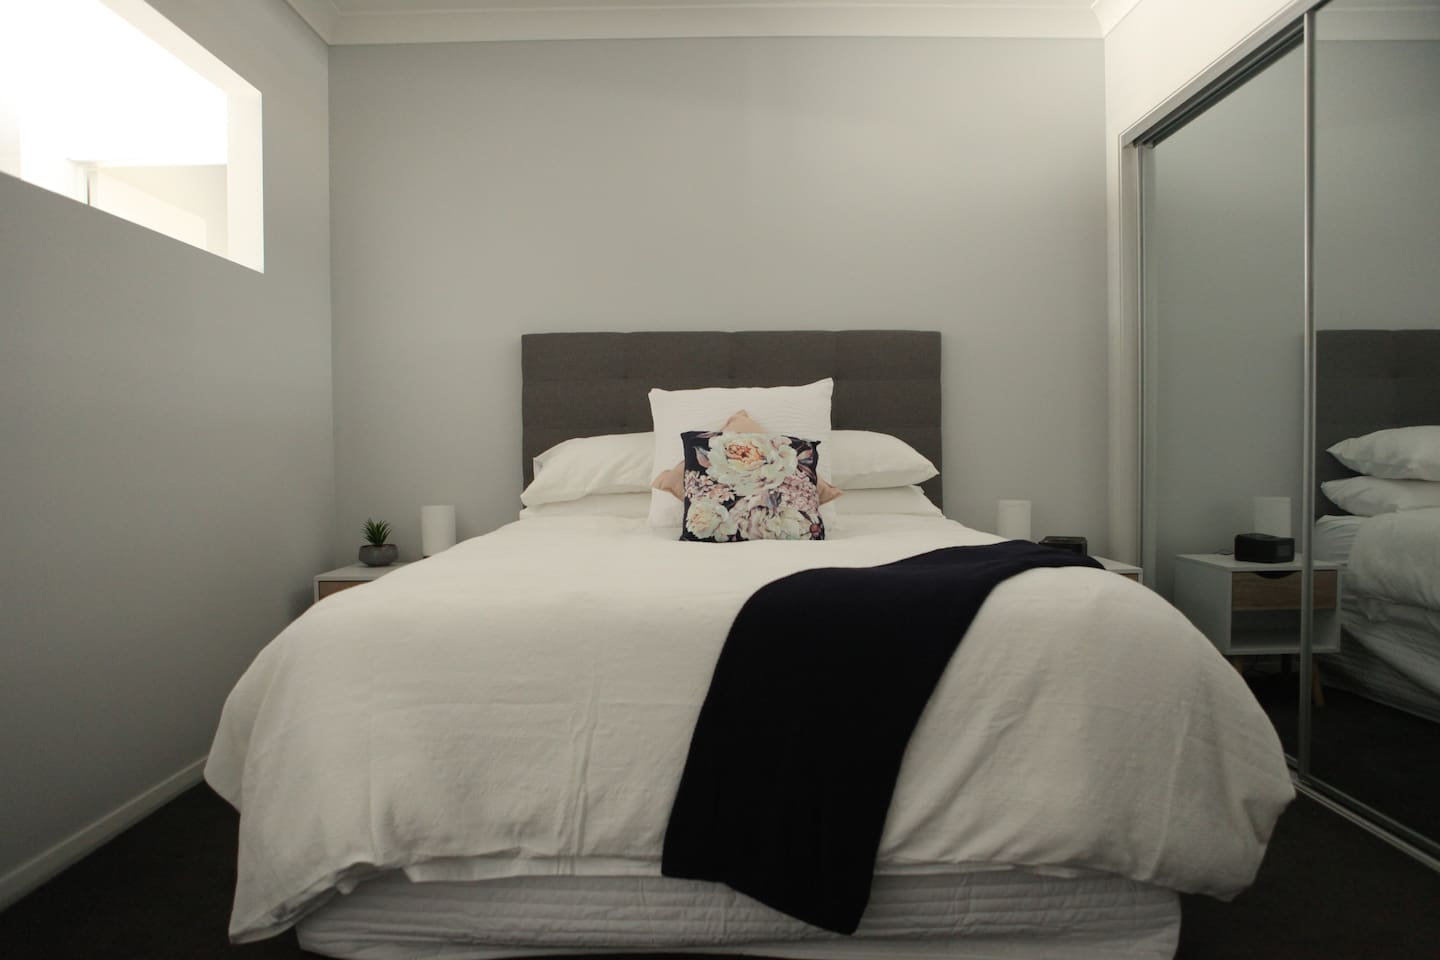 Brand New Luxury Mattresses same as 5 star Hotels with Sheridan linen  to ensure the best nights sleep